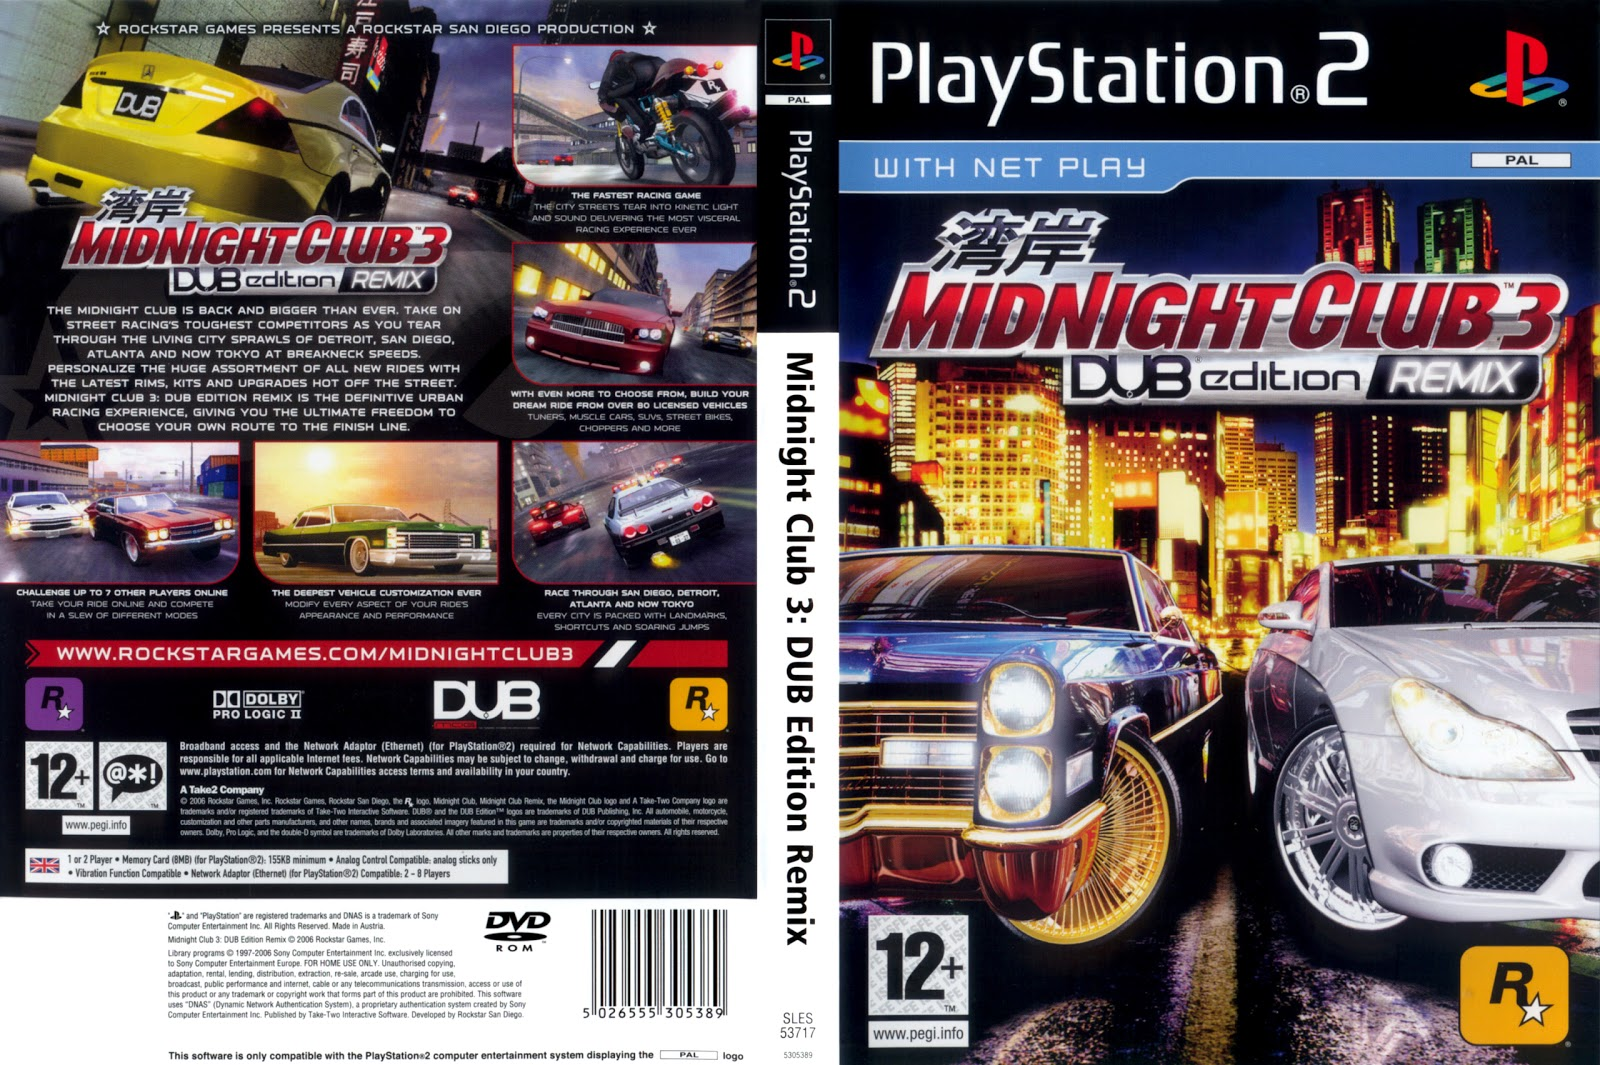 Midnight Club 2 Ps2 Cheats